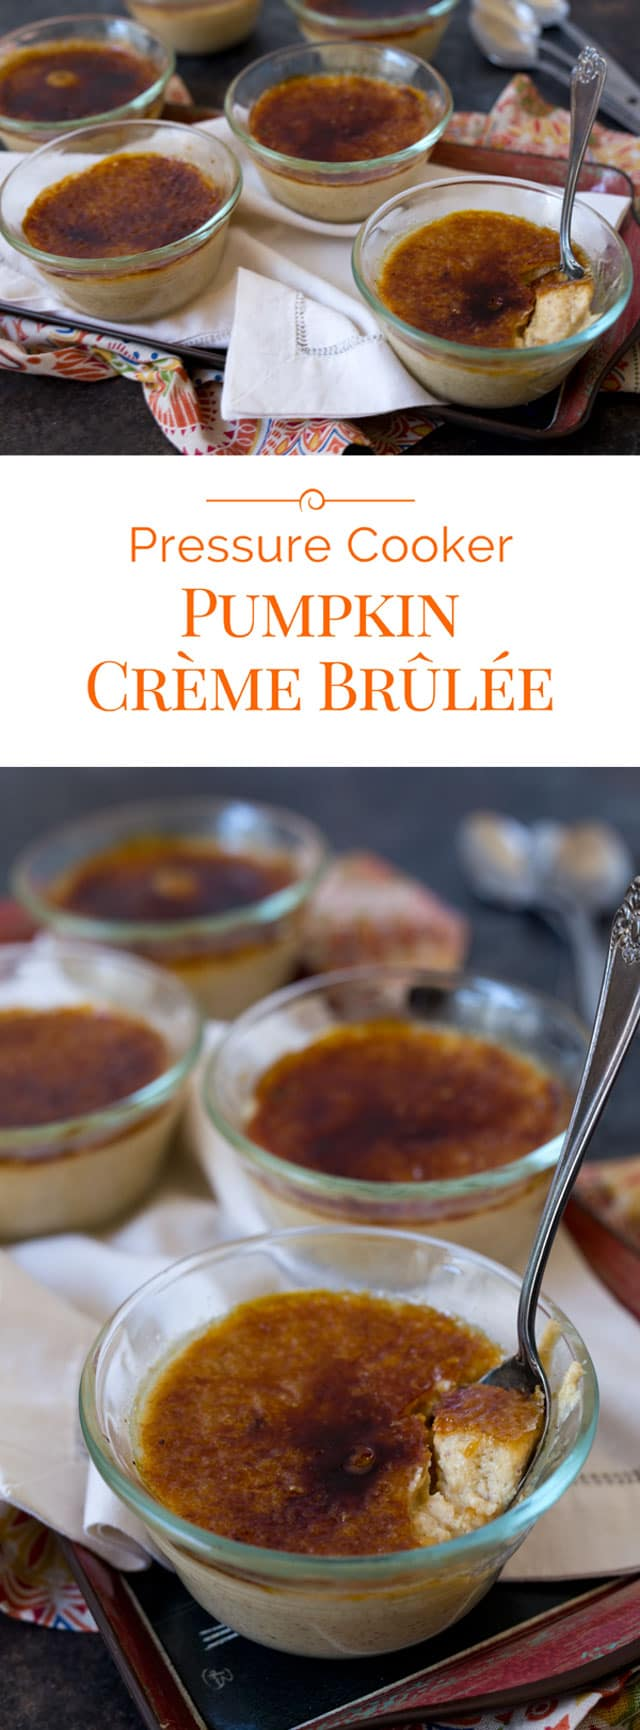 Pressure Cooker Pumpkin Crème Brûlée photo collage